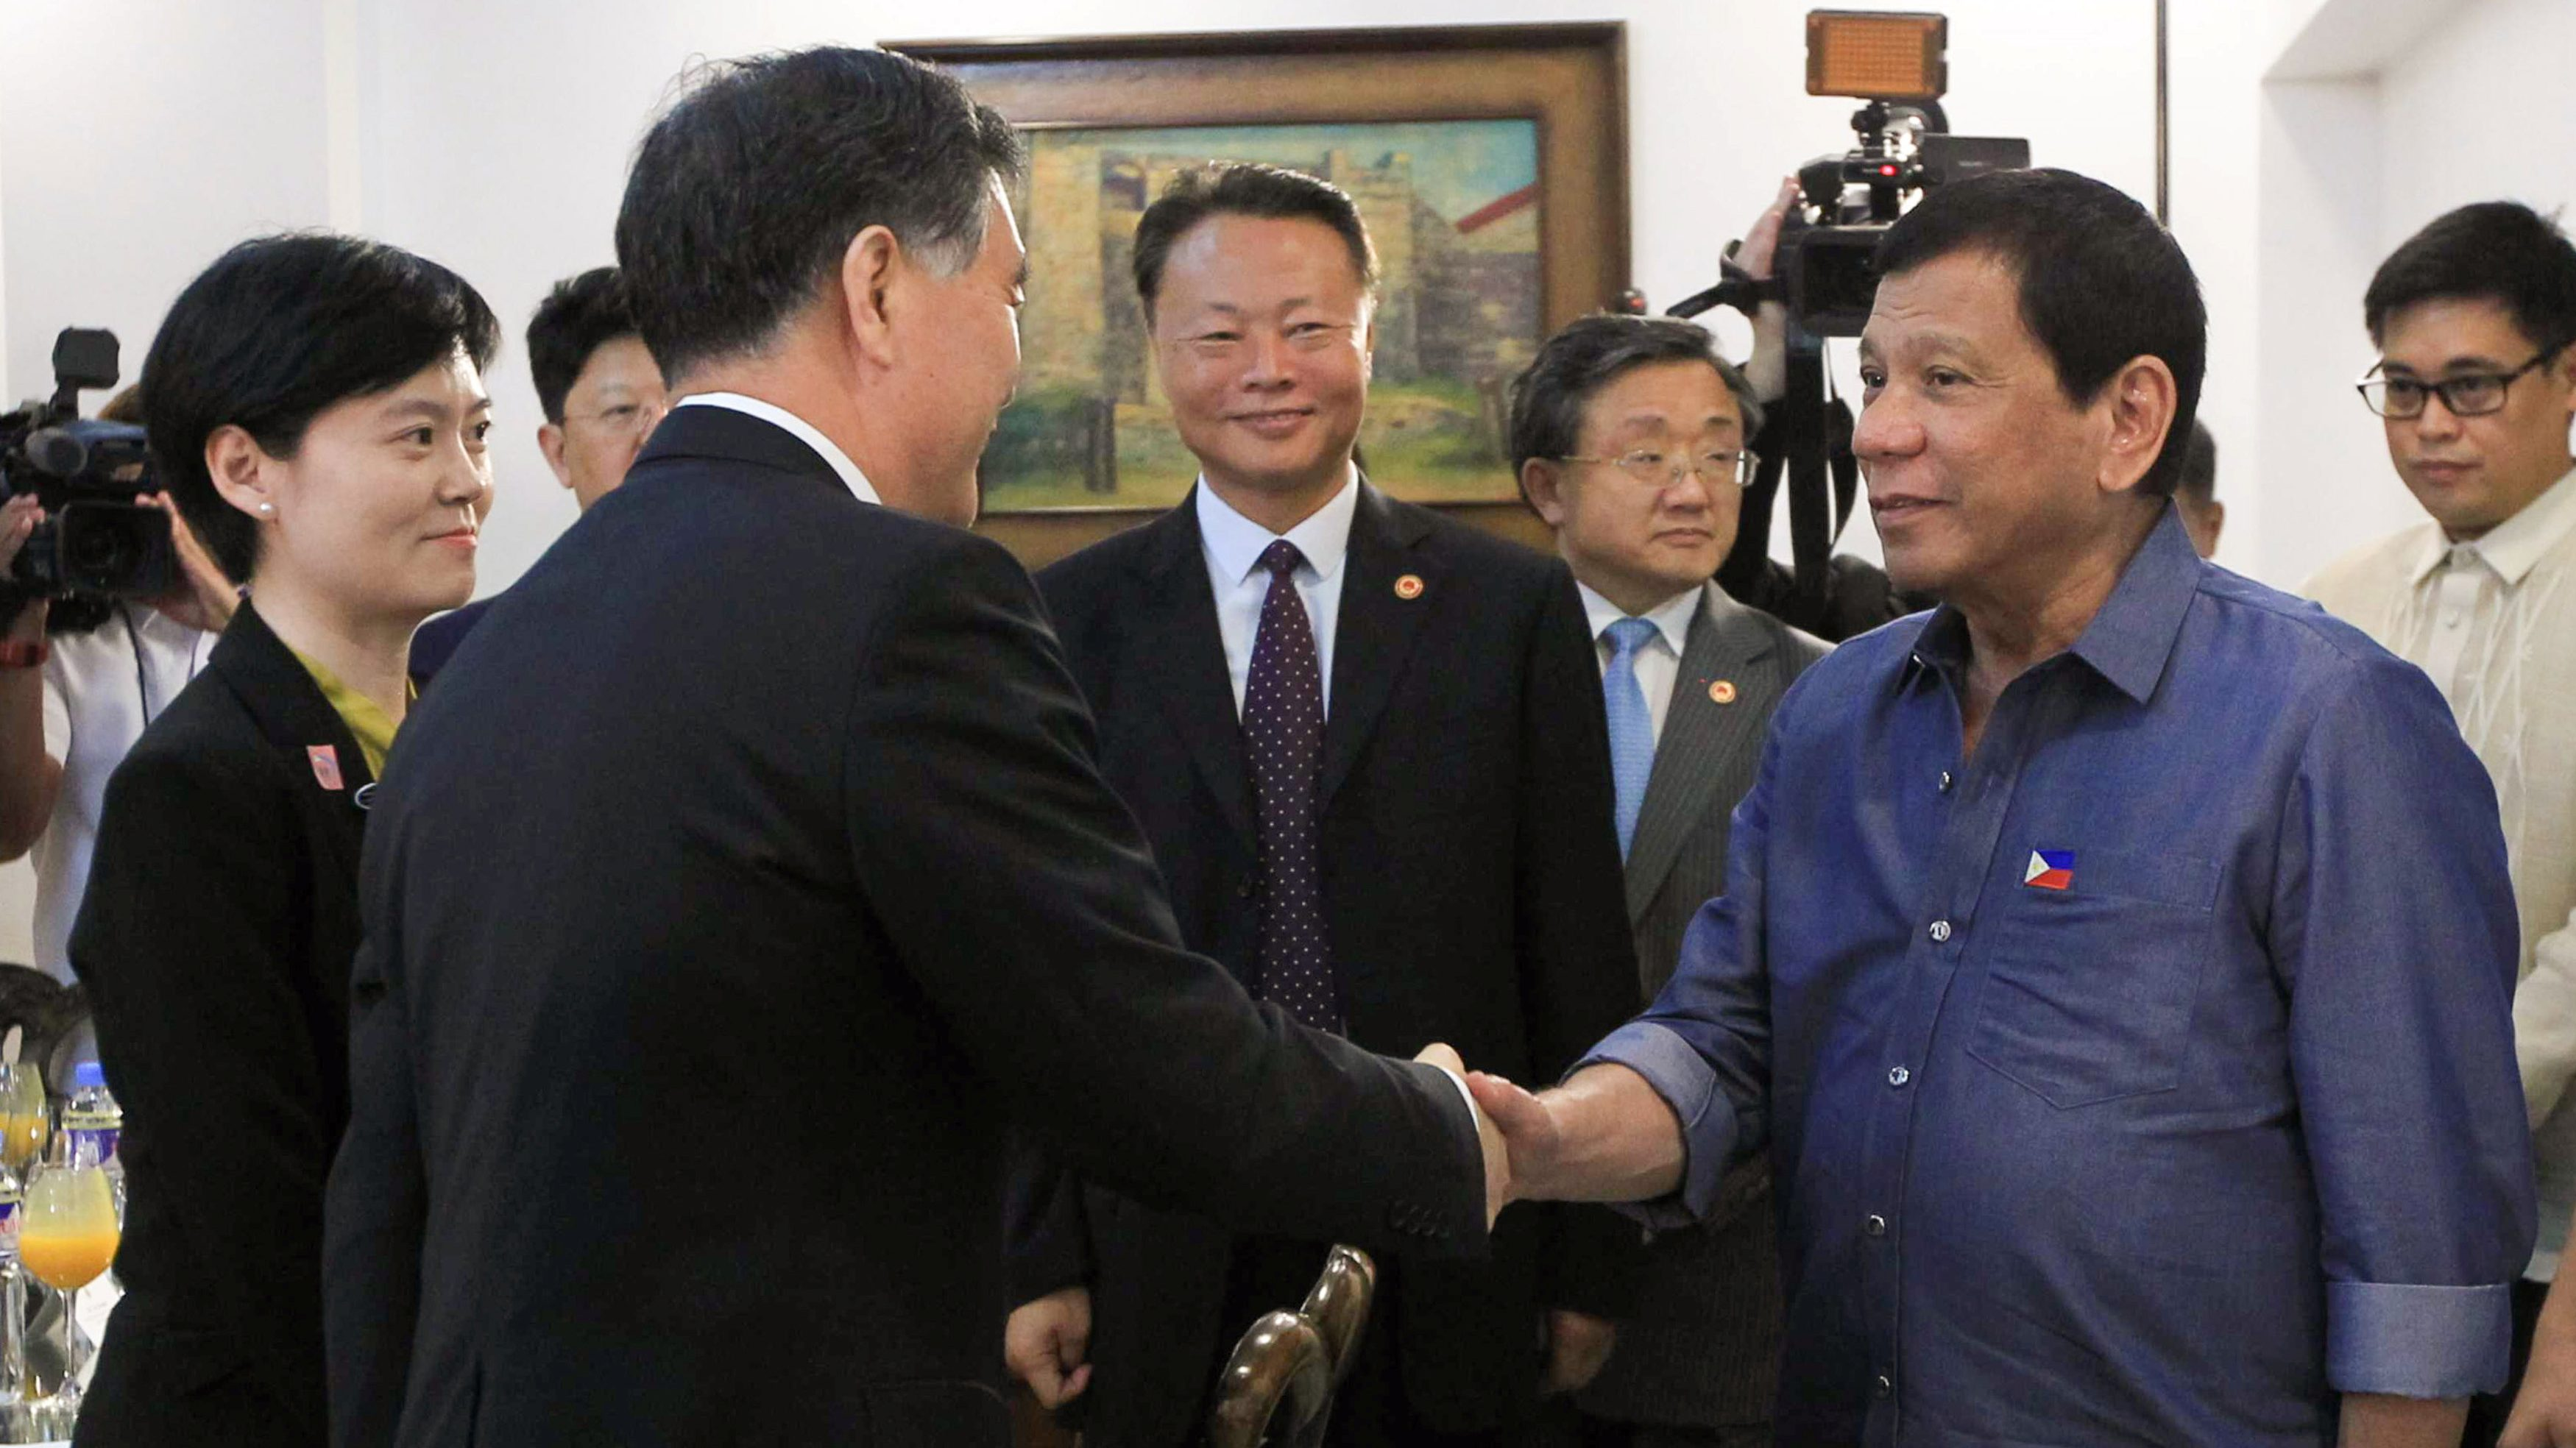 Philippine President Rodrigo Duterte greets Vice Premier of China, Wang Yang (L) during his courtesy call at the Presidential Guest House in Davao city, Philippines March 17, 2017.